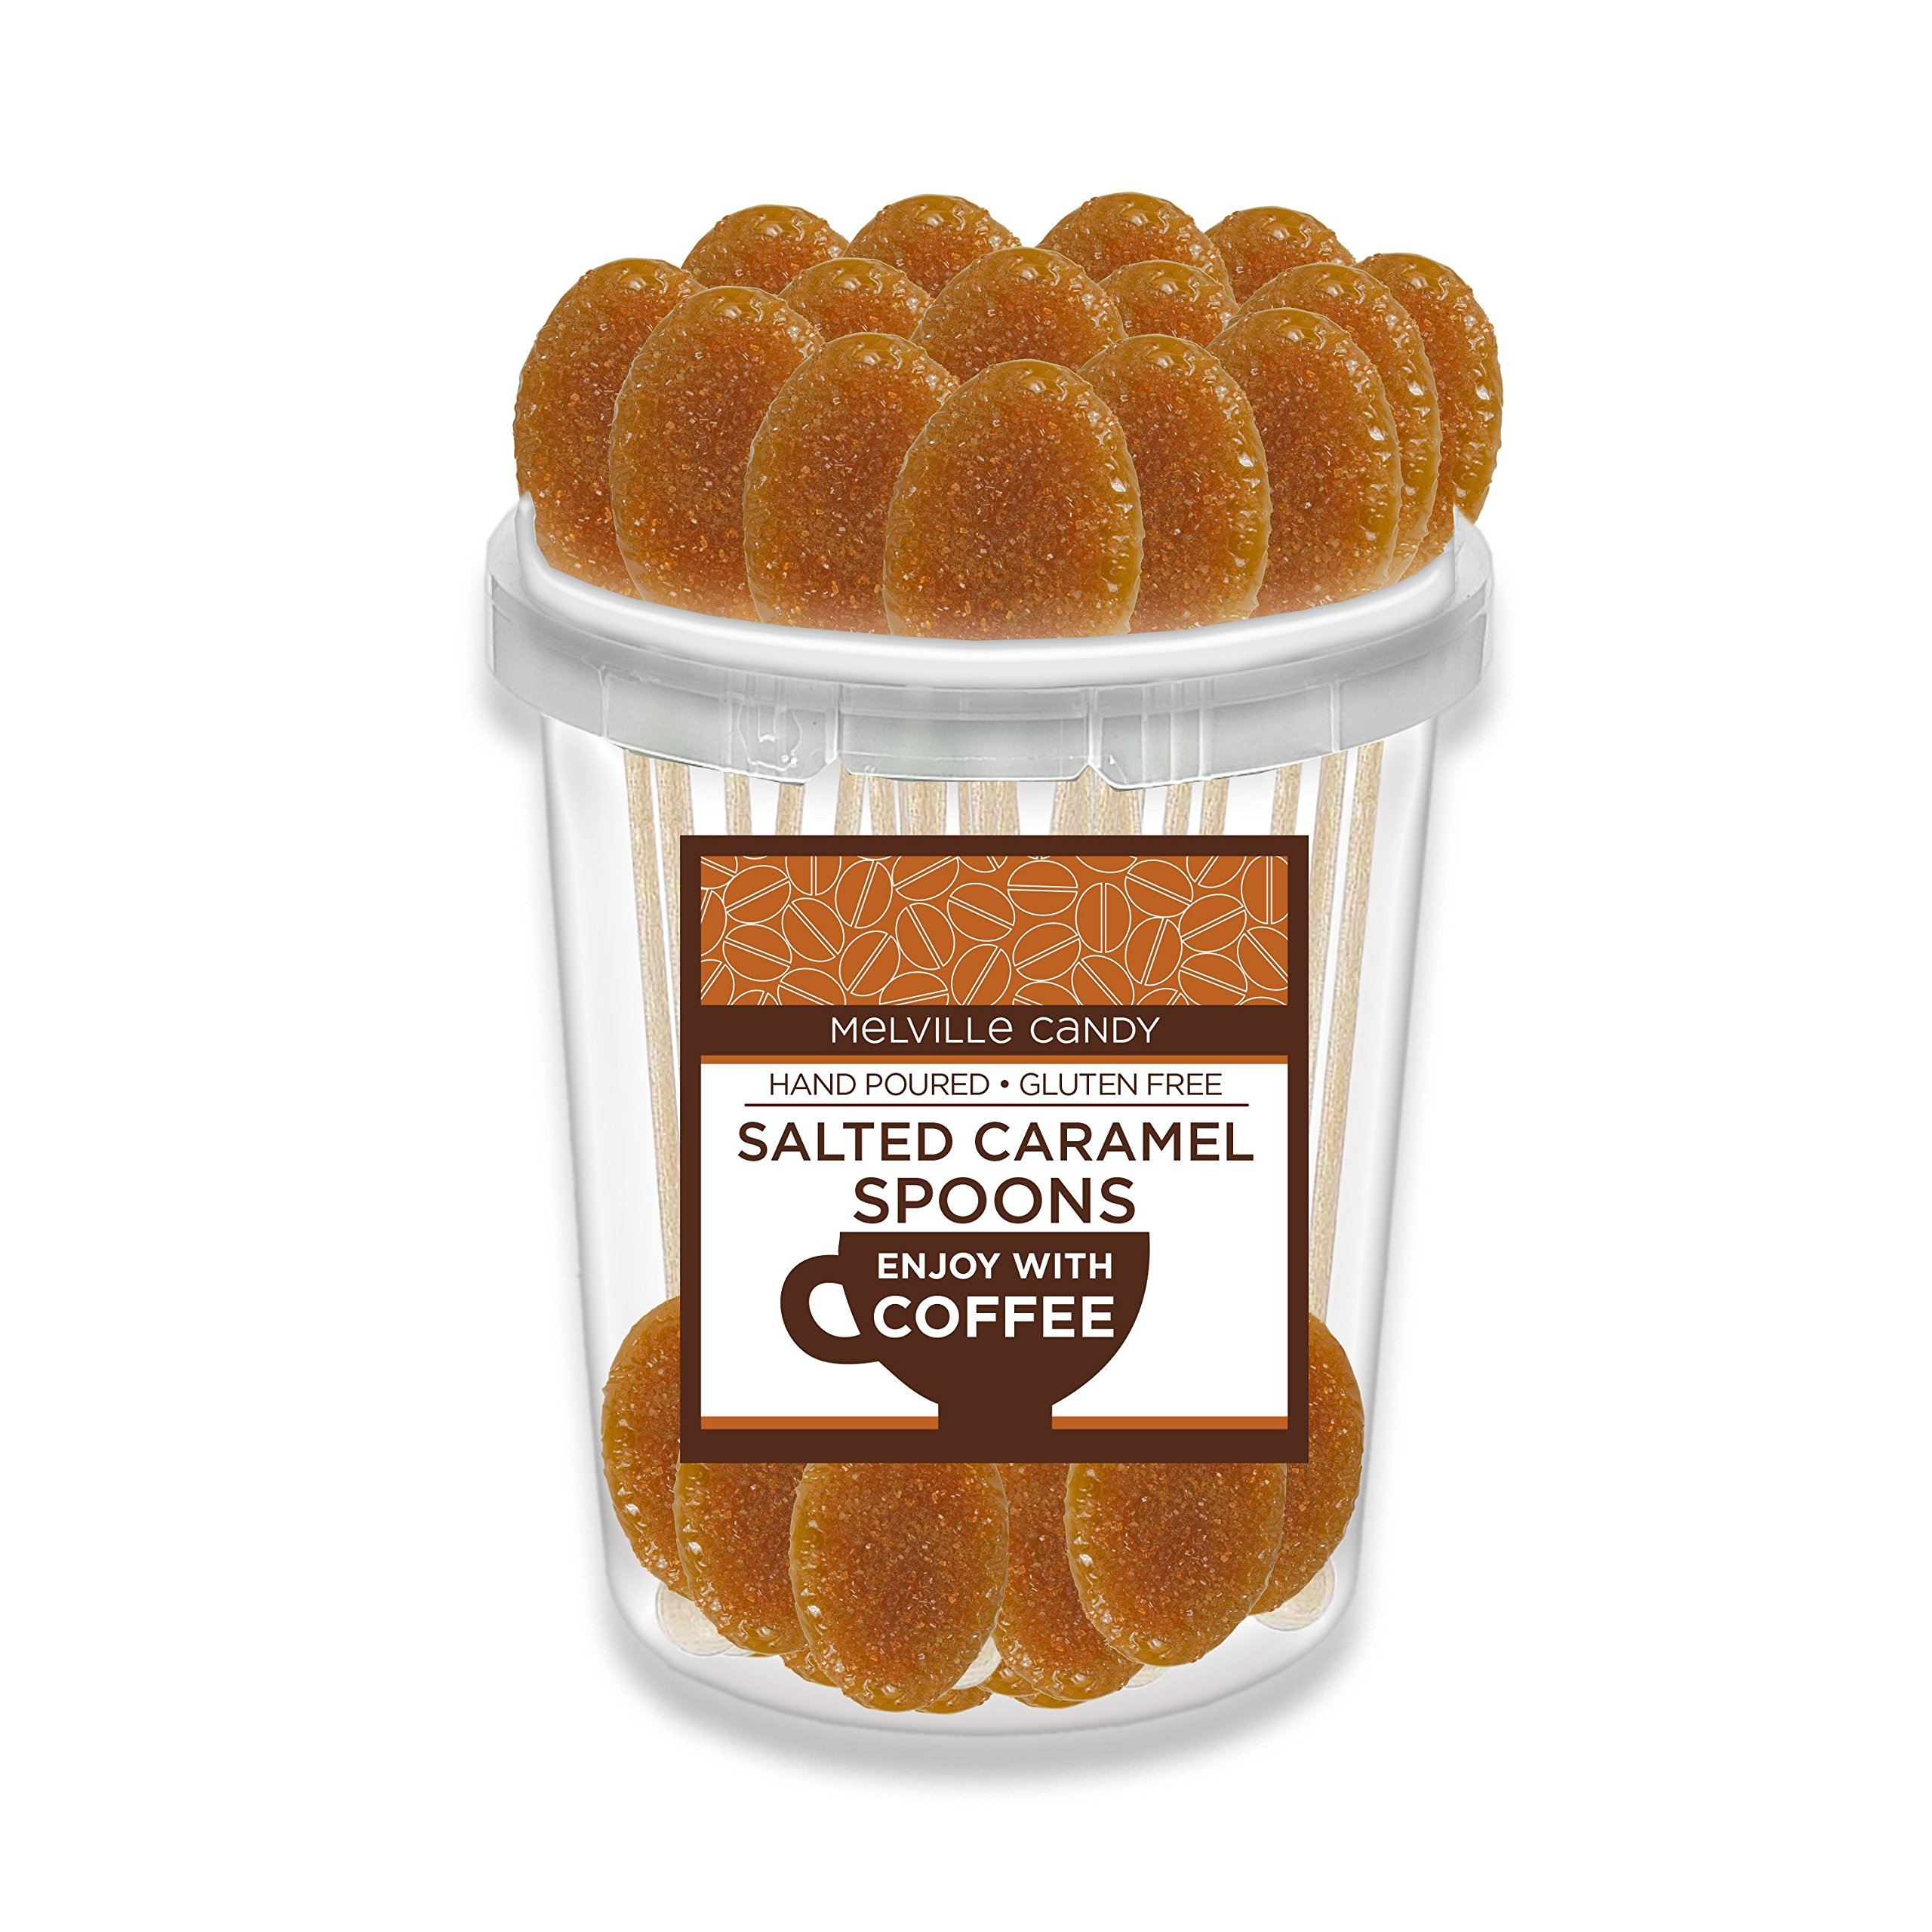 Salted Caramel Flavored Coffee Spoon Hard Candy Stirrer (30 Count) by Melville Candy